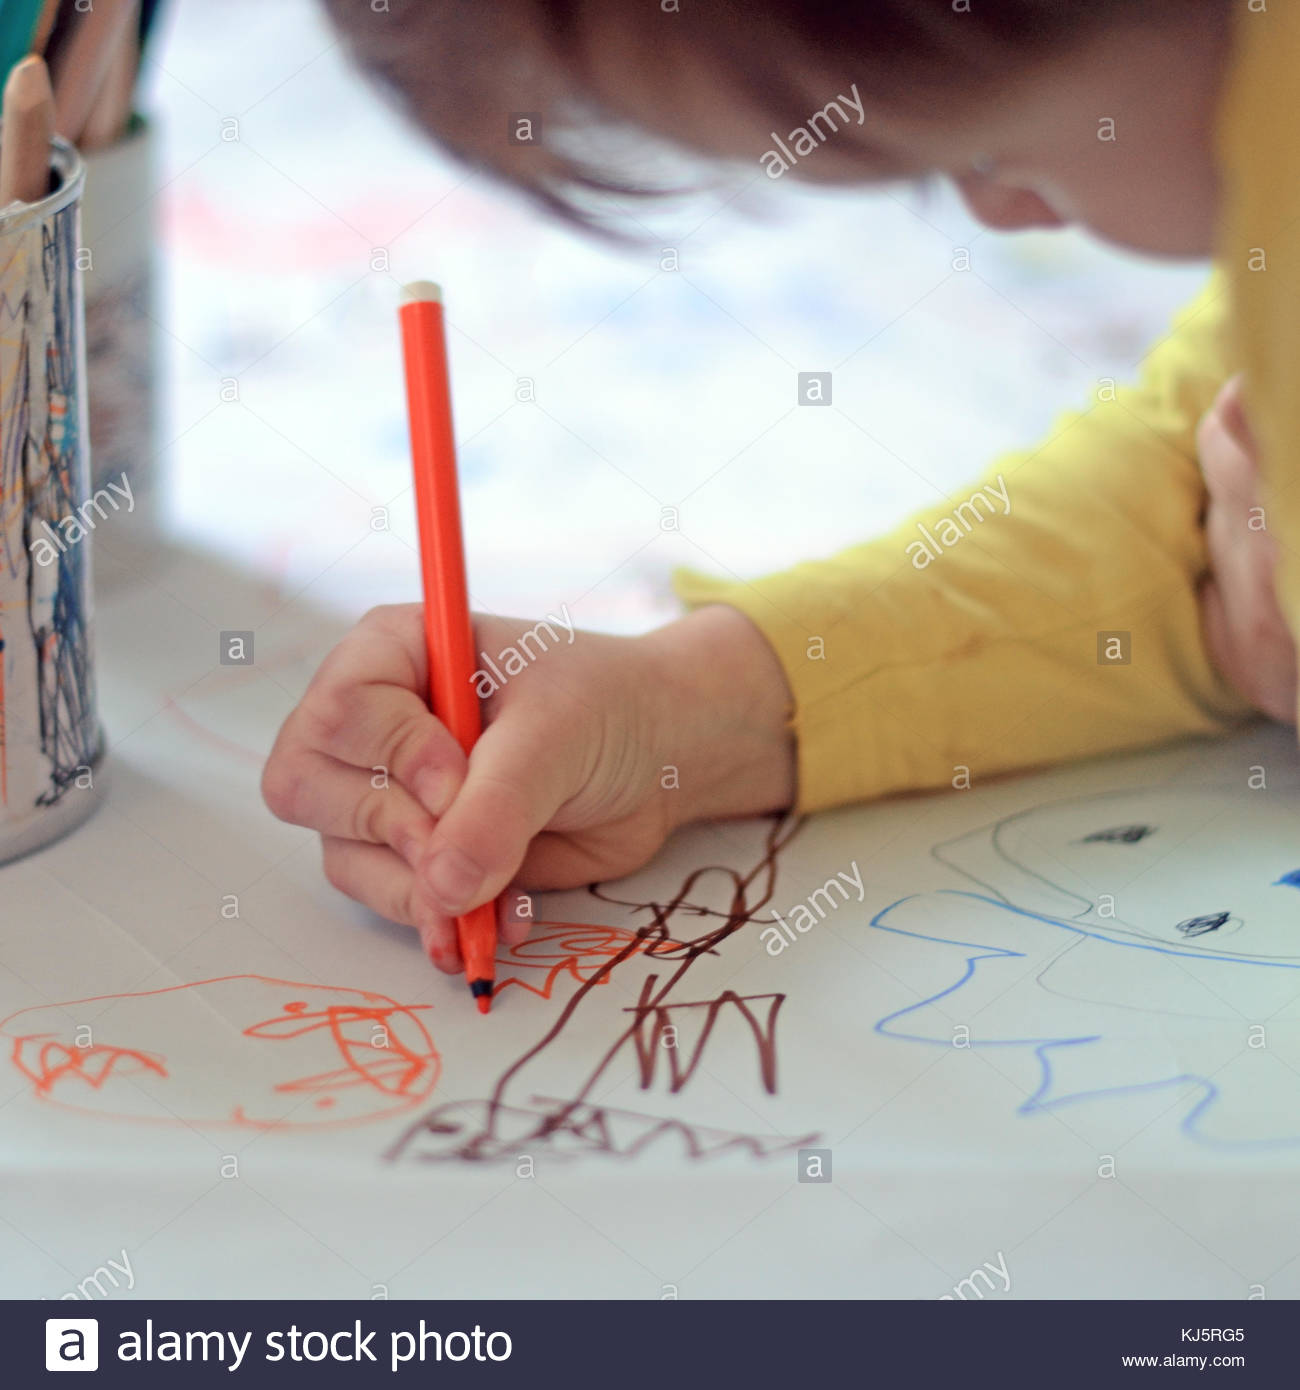 Child drawing - Stock Image